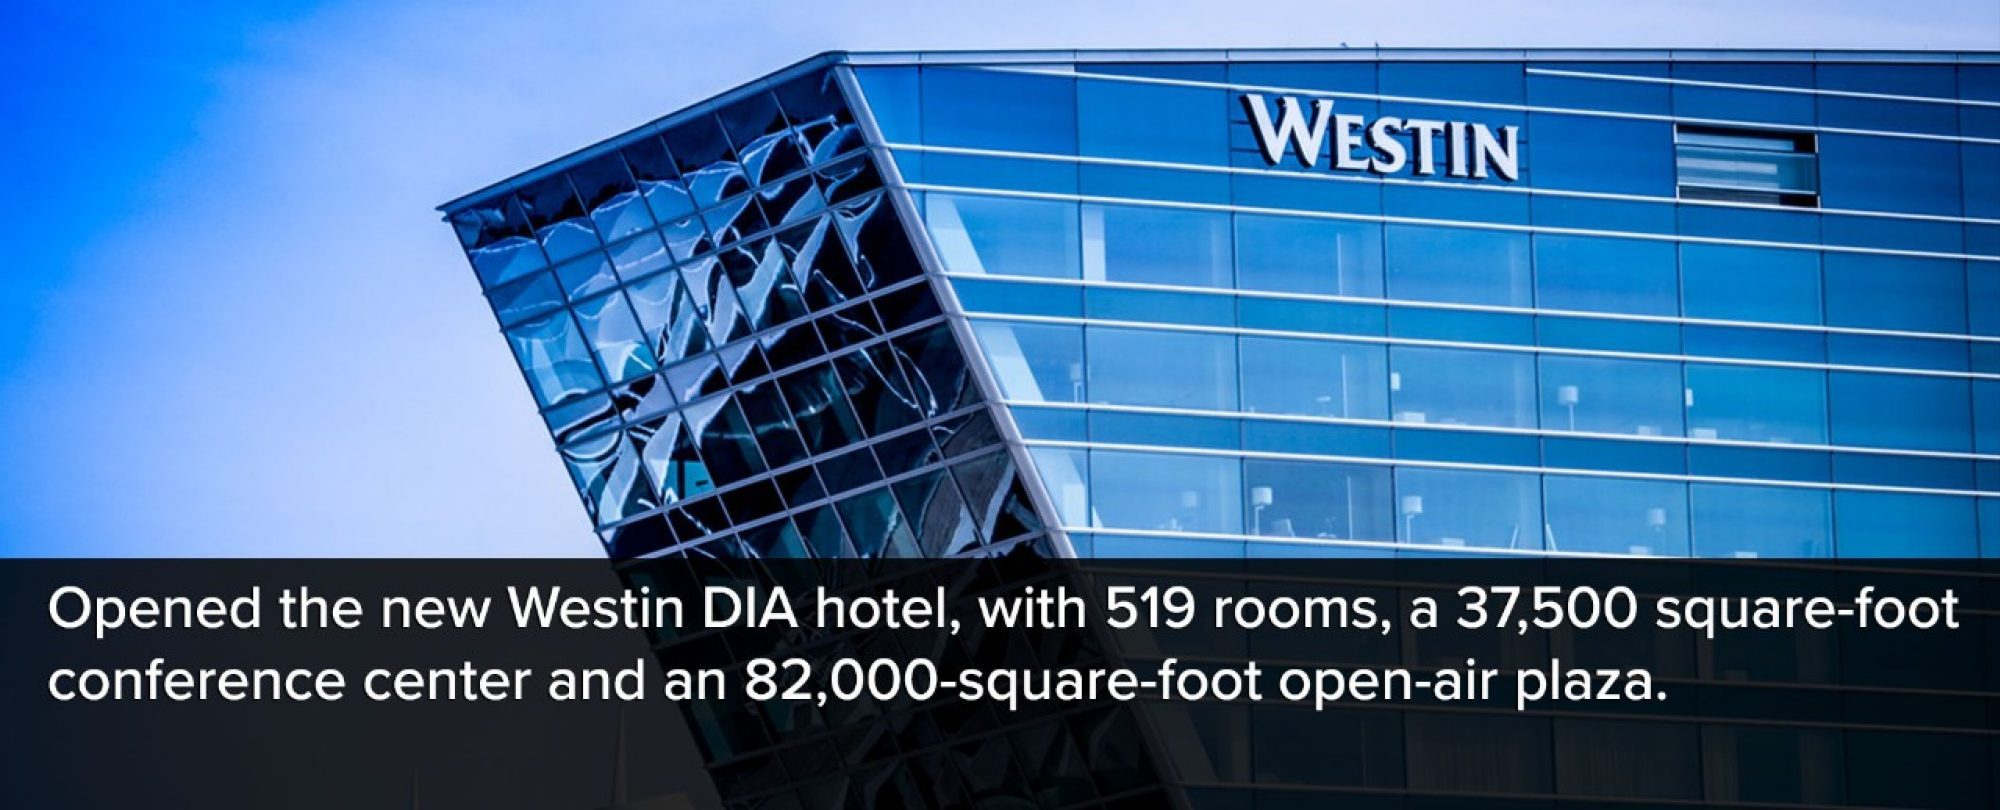 Photo of the exterior of the new Westin DIA Hotel. The new hotel opened with 519 rooms, a 37,500 square-foot conference center, and an 82,000 square-foot open-air plaza